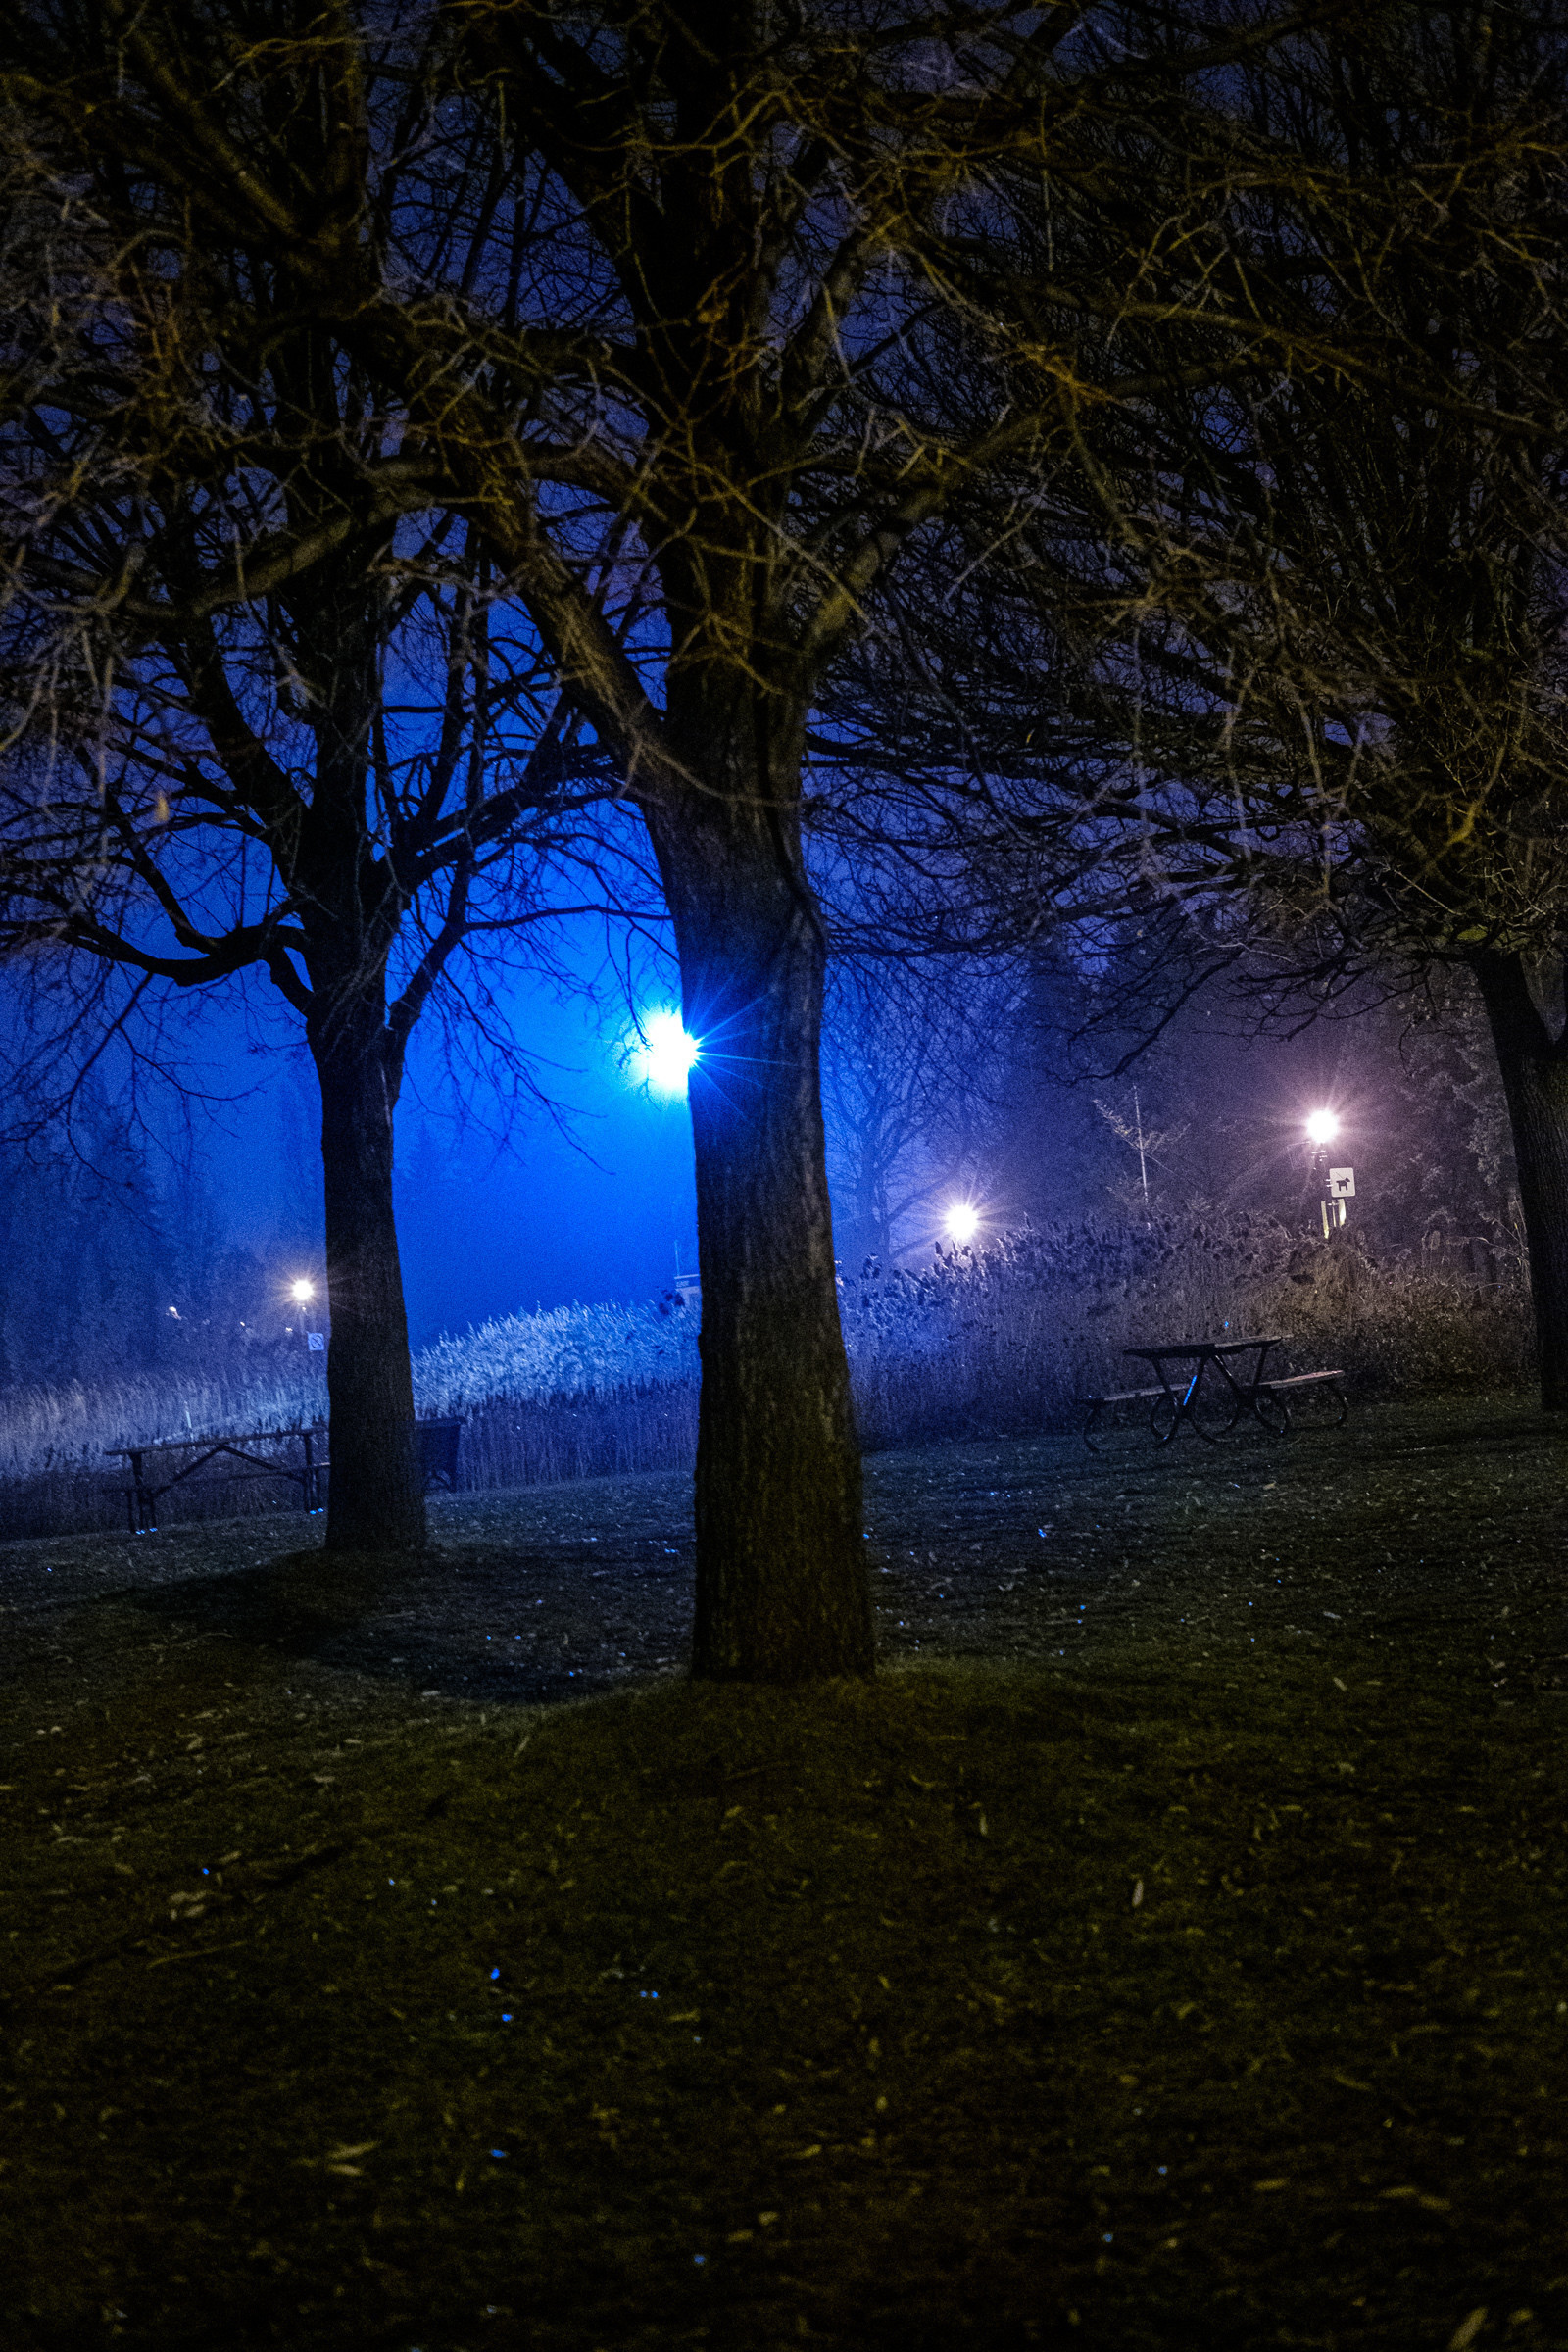 Spooky trees after dark